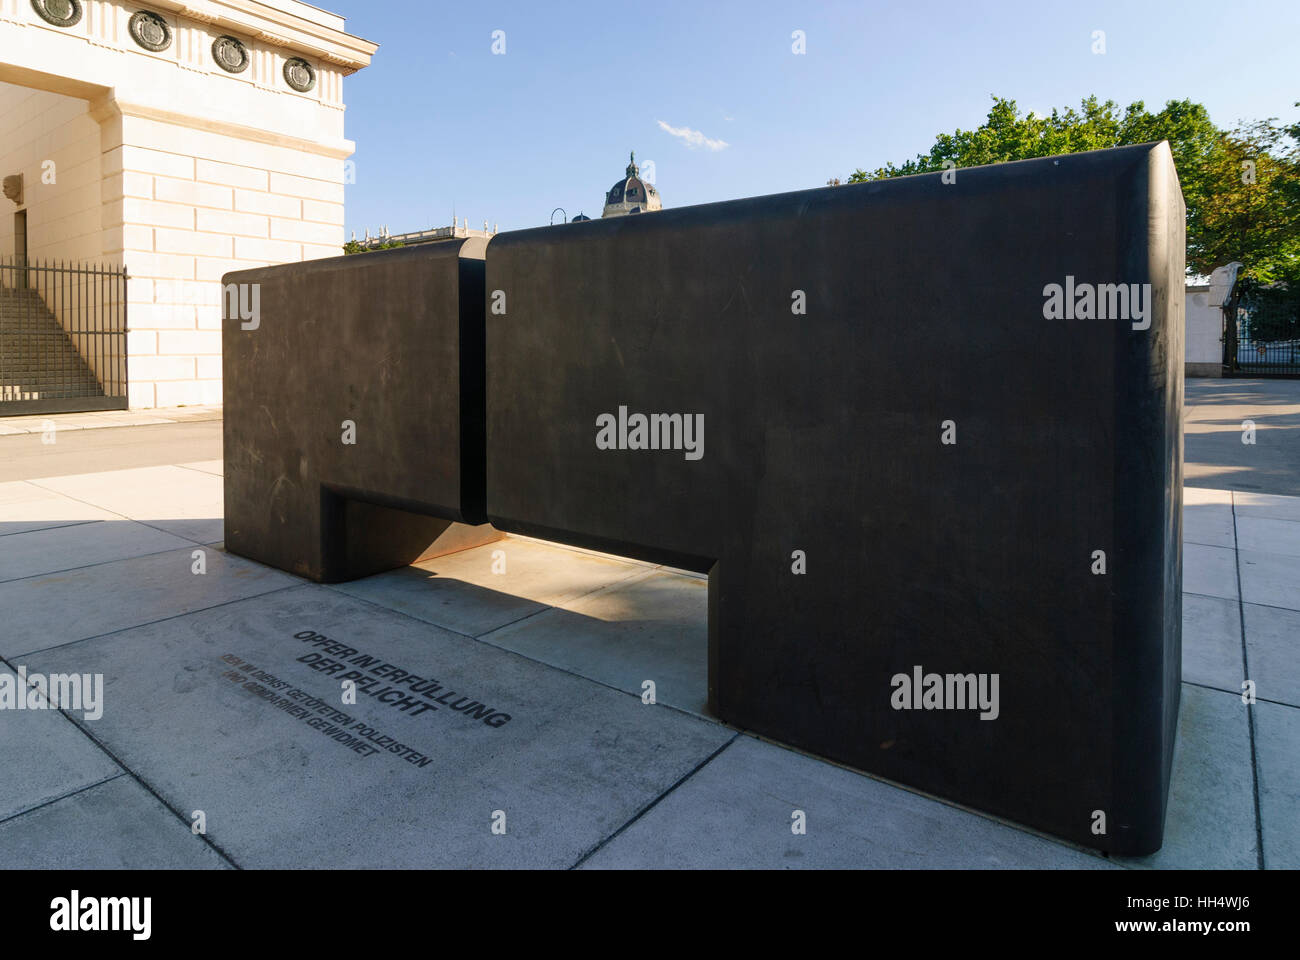 Wien, Vienna: Monument to the policemen killed on duty at the Burgtor, 01. Old Town, Wien, Austria - Stock Image